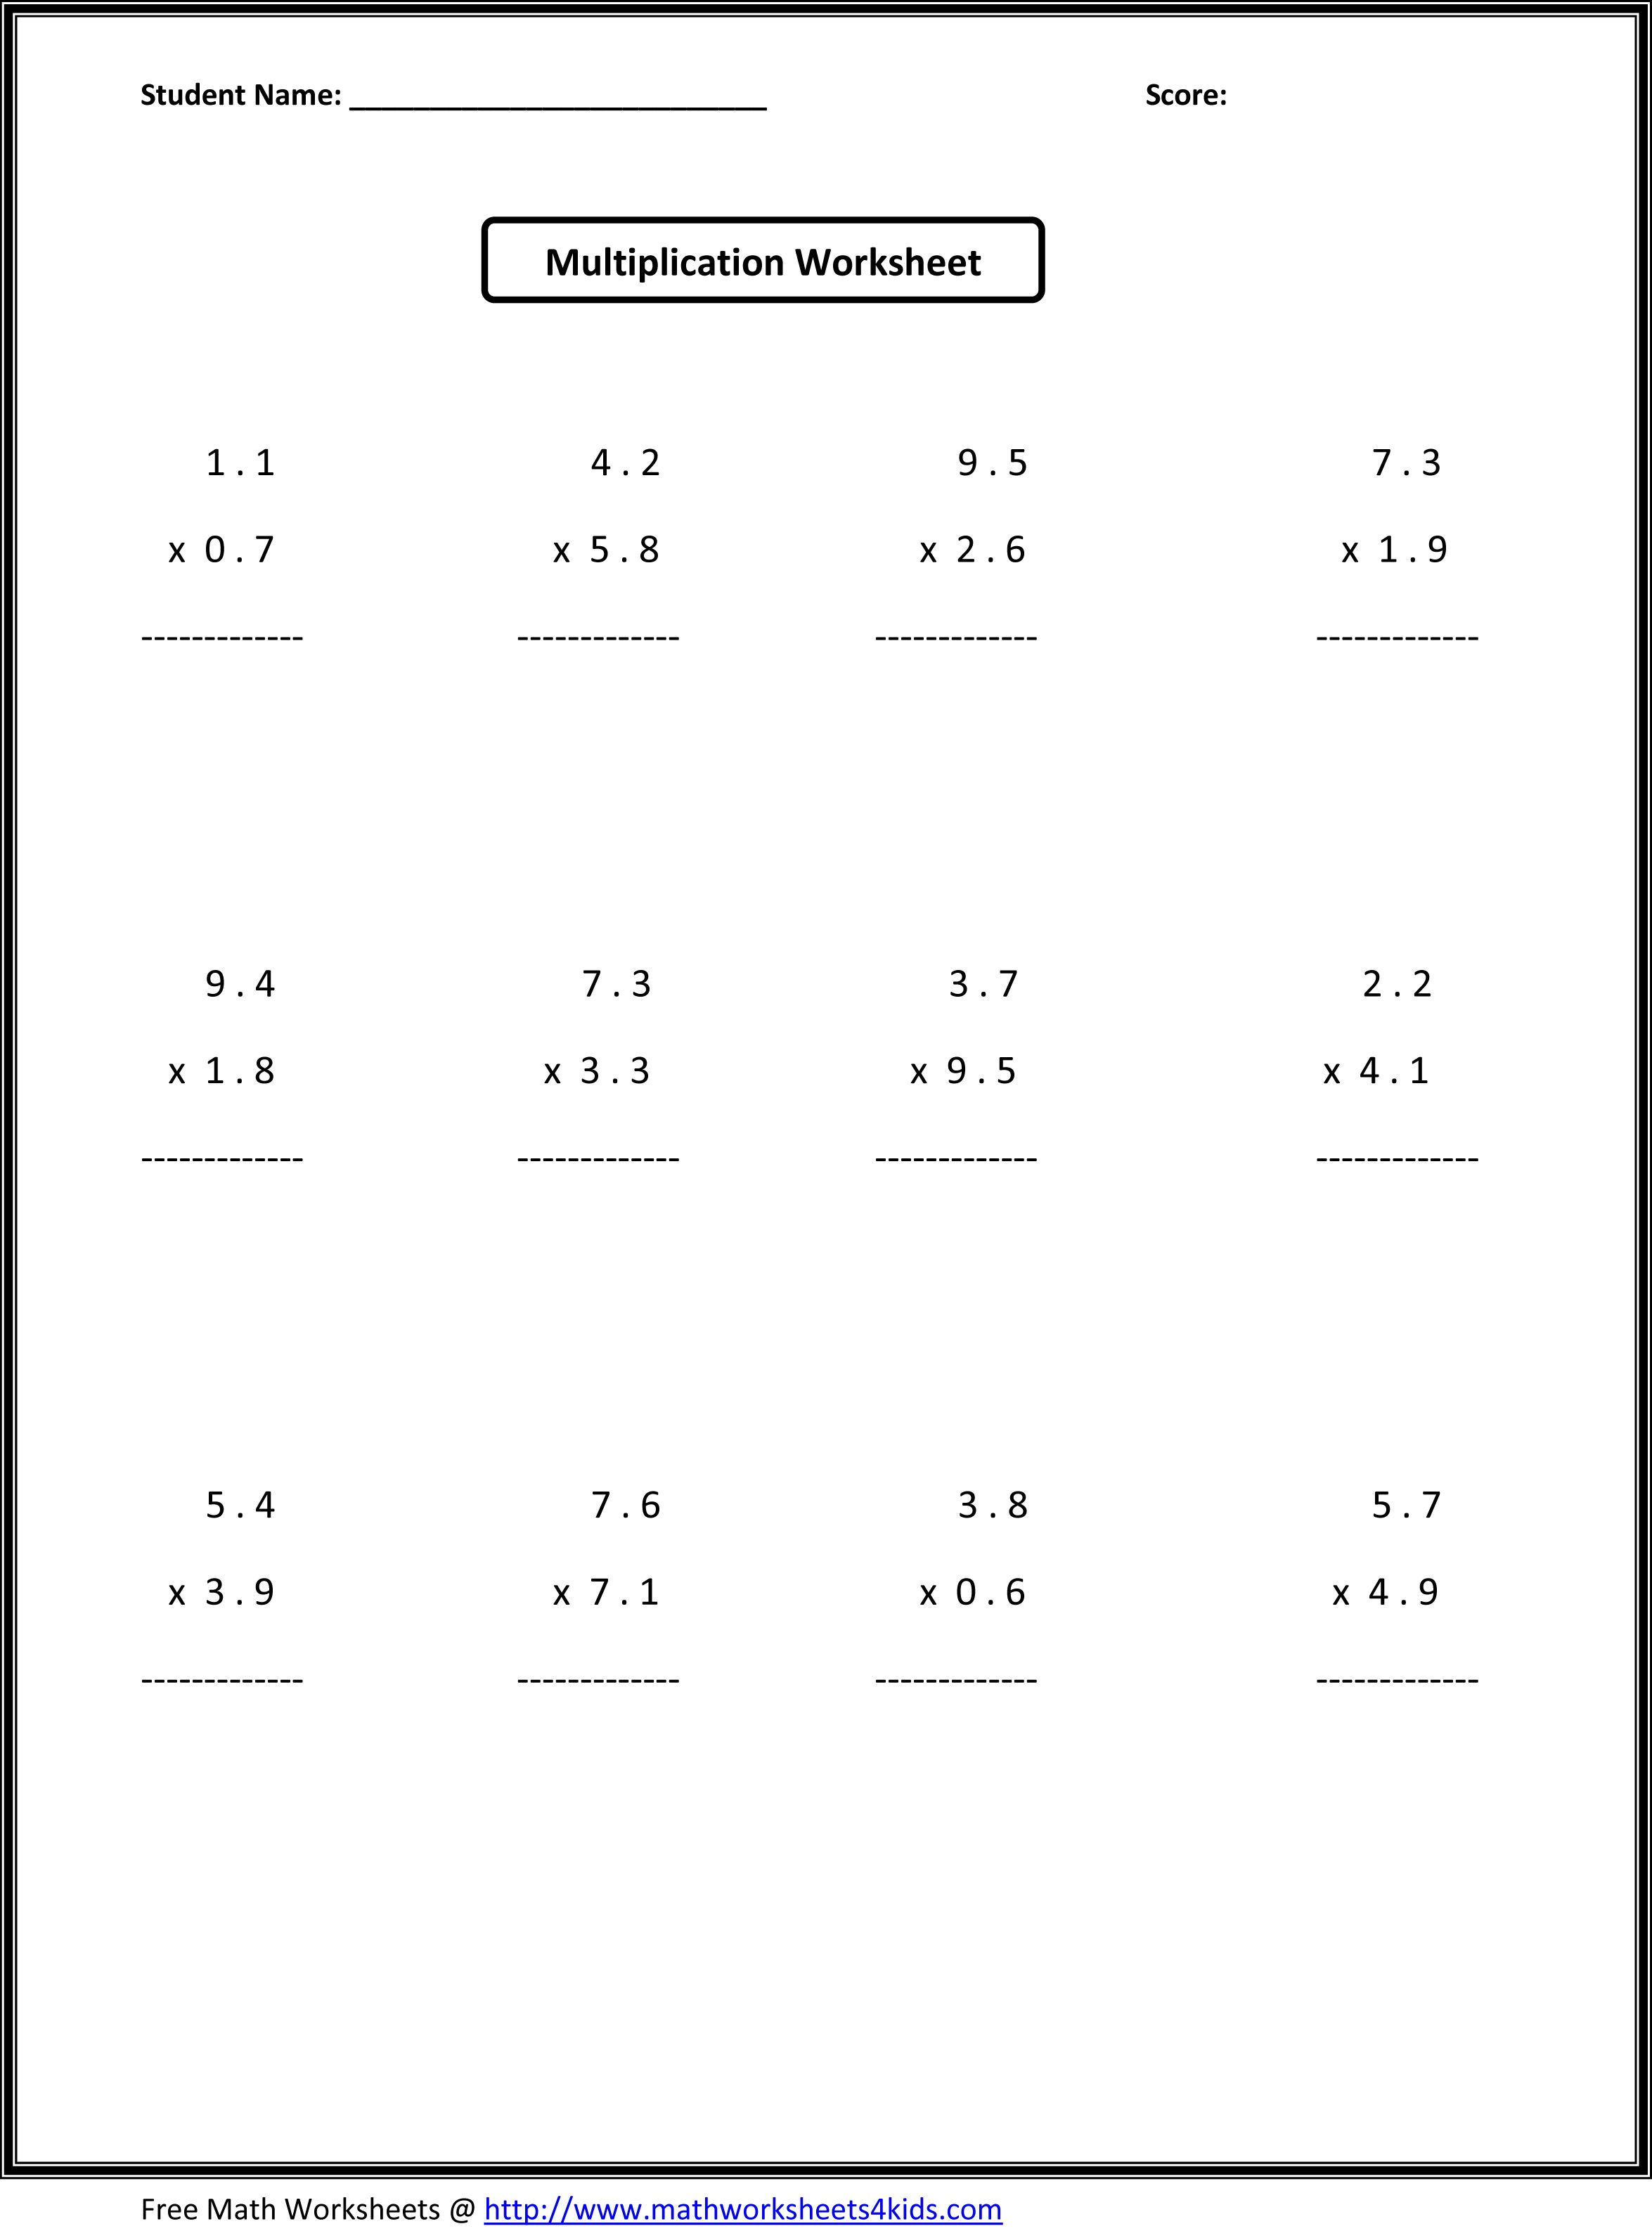 Printables 6th Grade Math Worksheets With Answers 7th grade math common core worksheet bundle 5 worksheets and sixth have ratio multiplying dividing fractions algebraic expressions equations inequalities geometry